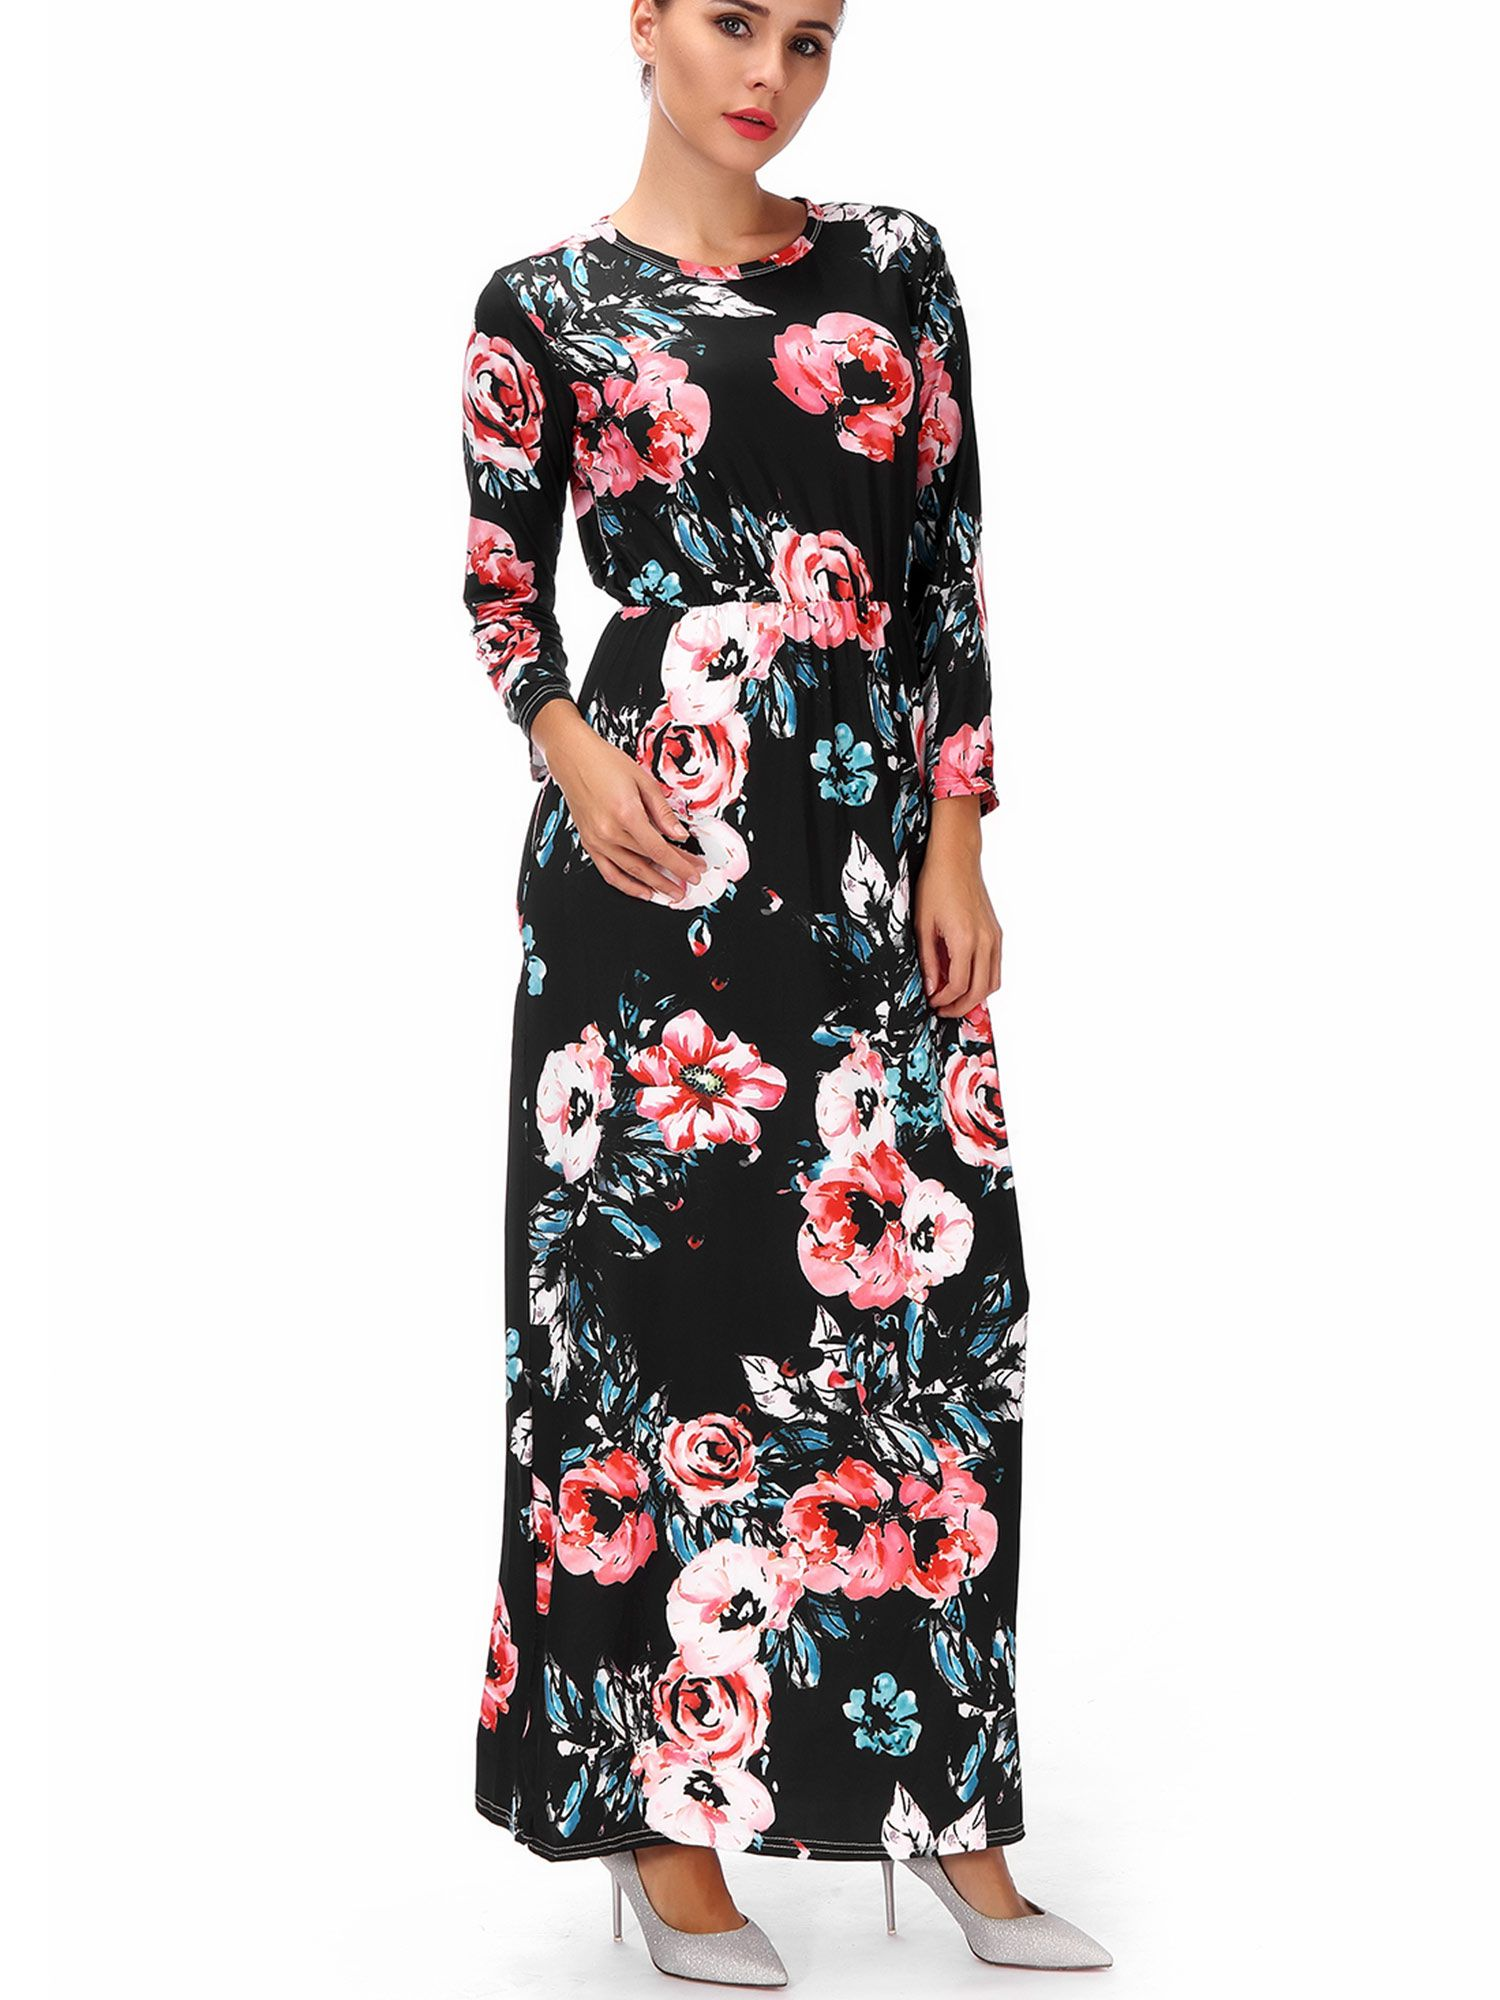 234fdf2128192 Buy Plus Size Maternity Dresses Long Sleeve Empire High Waist Maxi Dress  Floral Print Casual Black/White S-3XL at Walmart.com